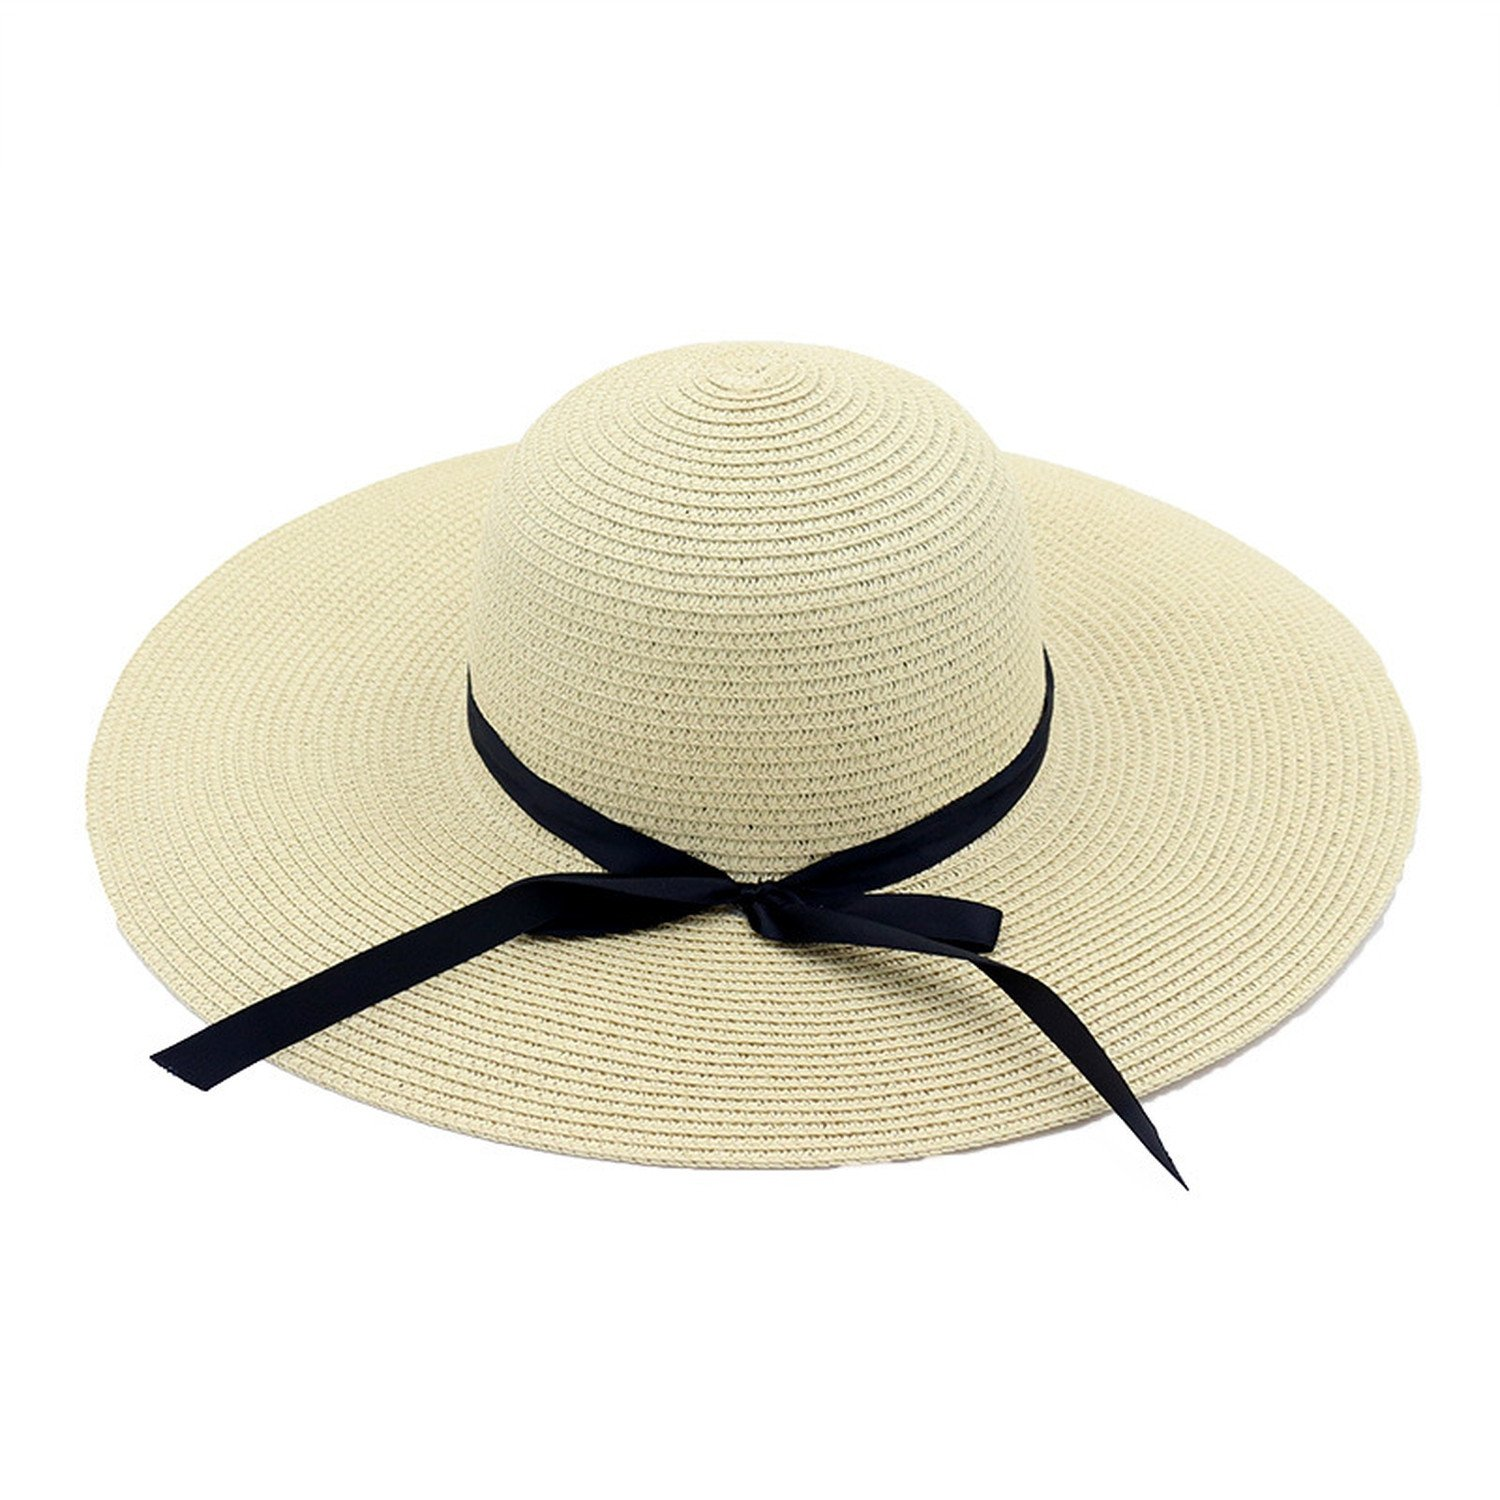 Spring and summer new hat female straw hat seaside holiday beach sun hat big hat bow bow sun hat,Khaki,adjustable by Spring Moon party-hats (Image #2)